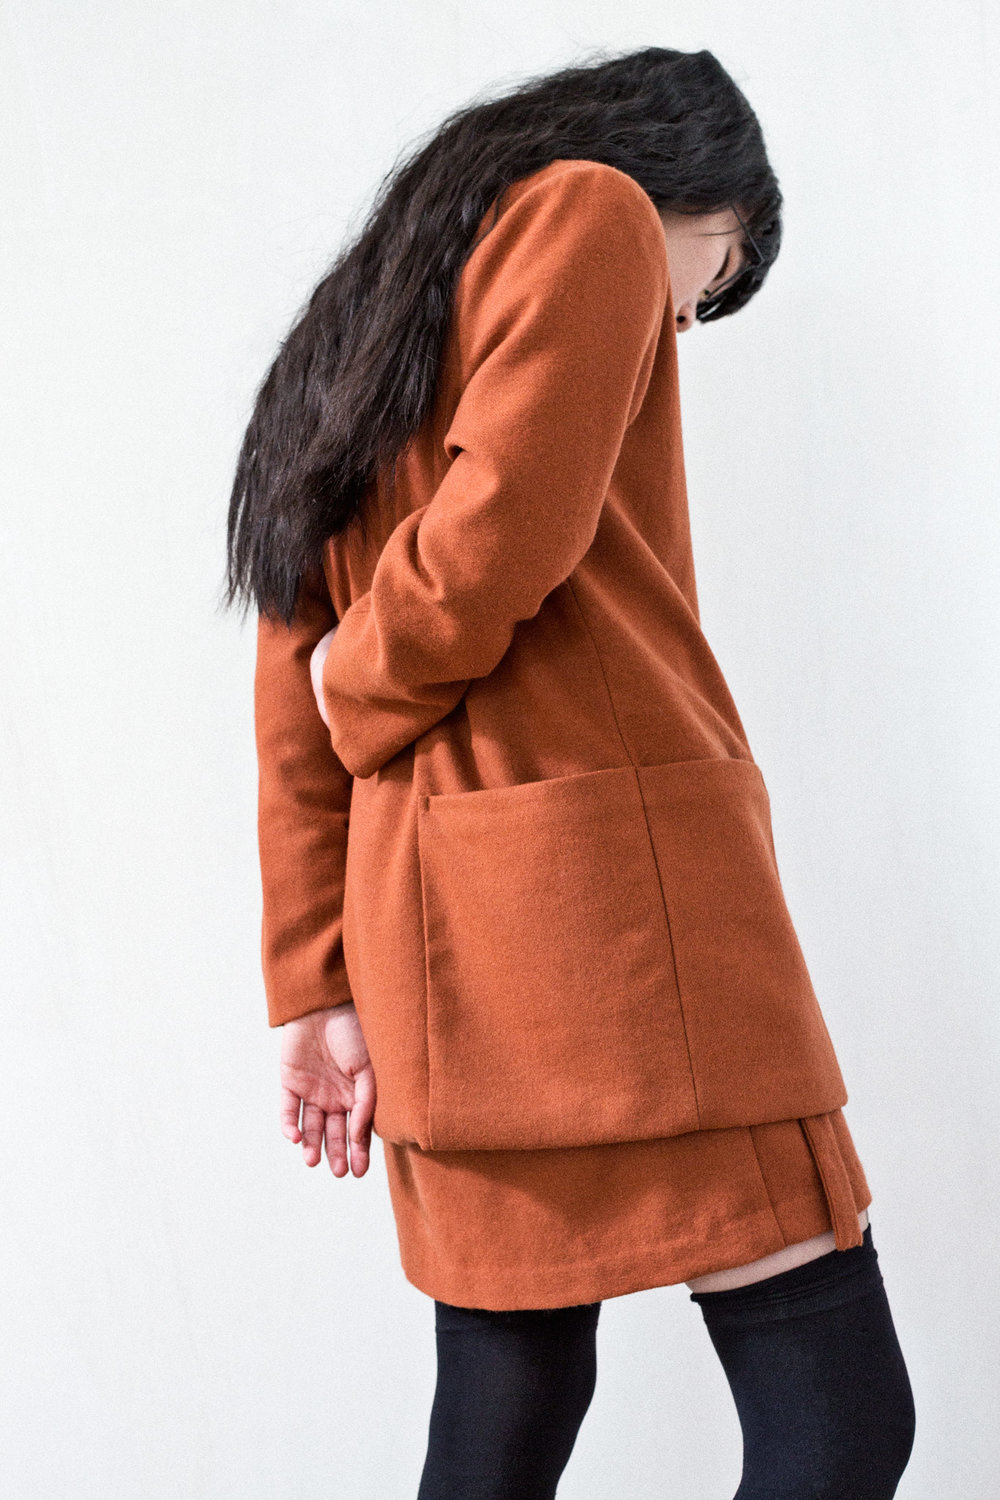 The Leon Jacket, photographed by Colin Simmons